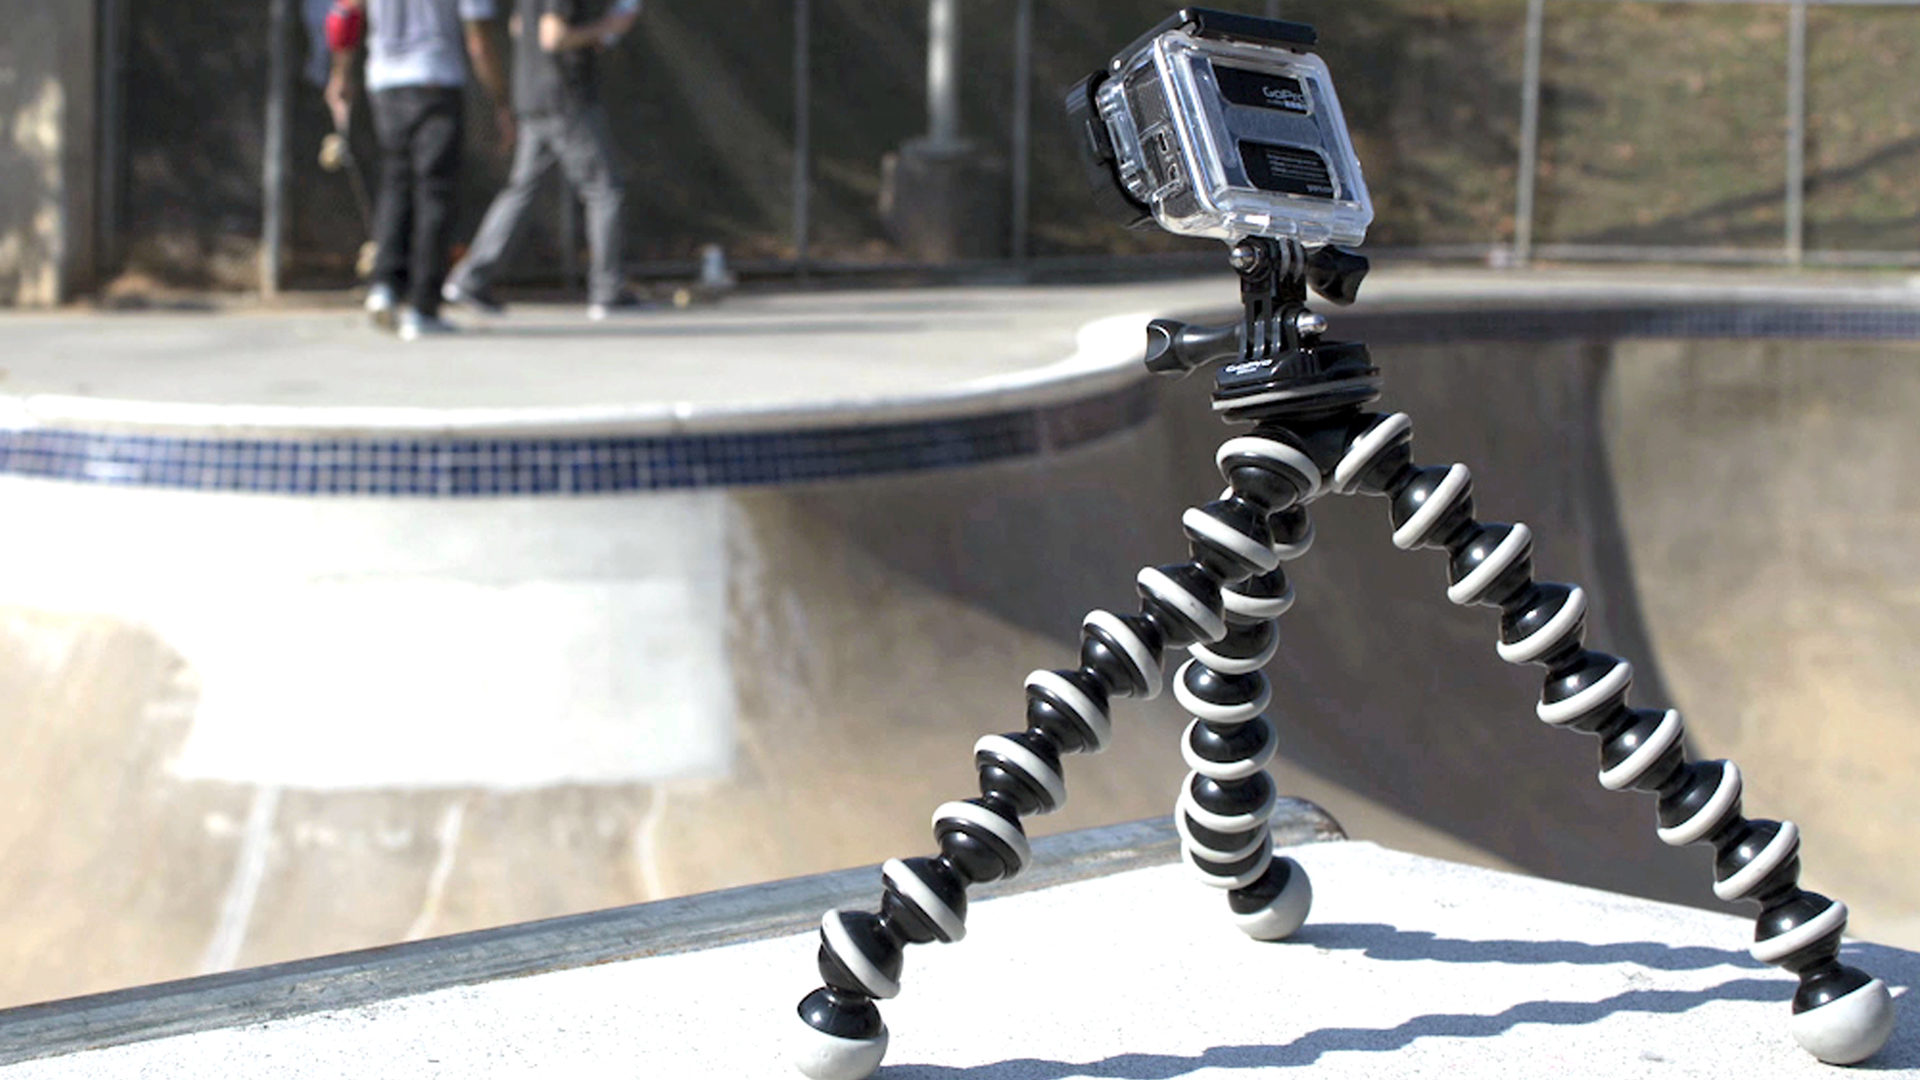 Welcome: Video Gear: Action Cams & Drones